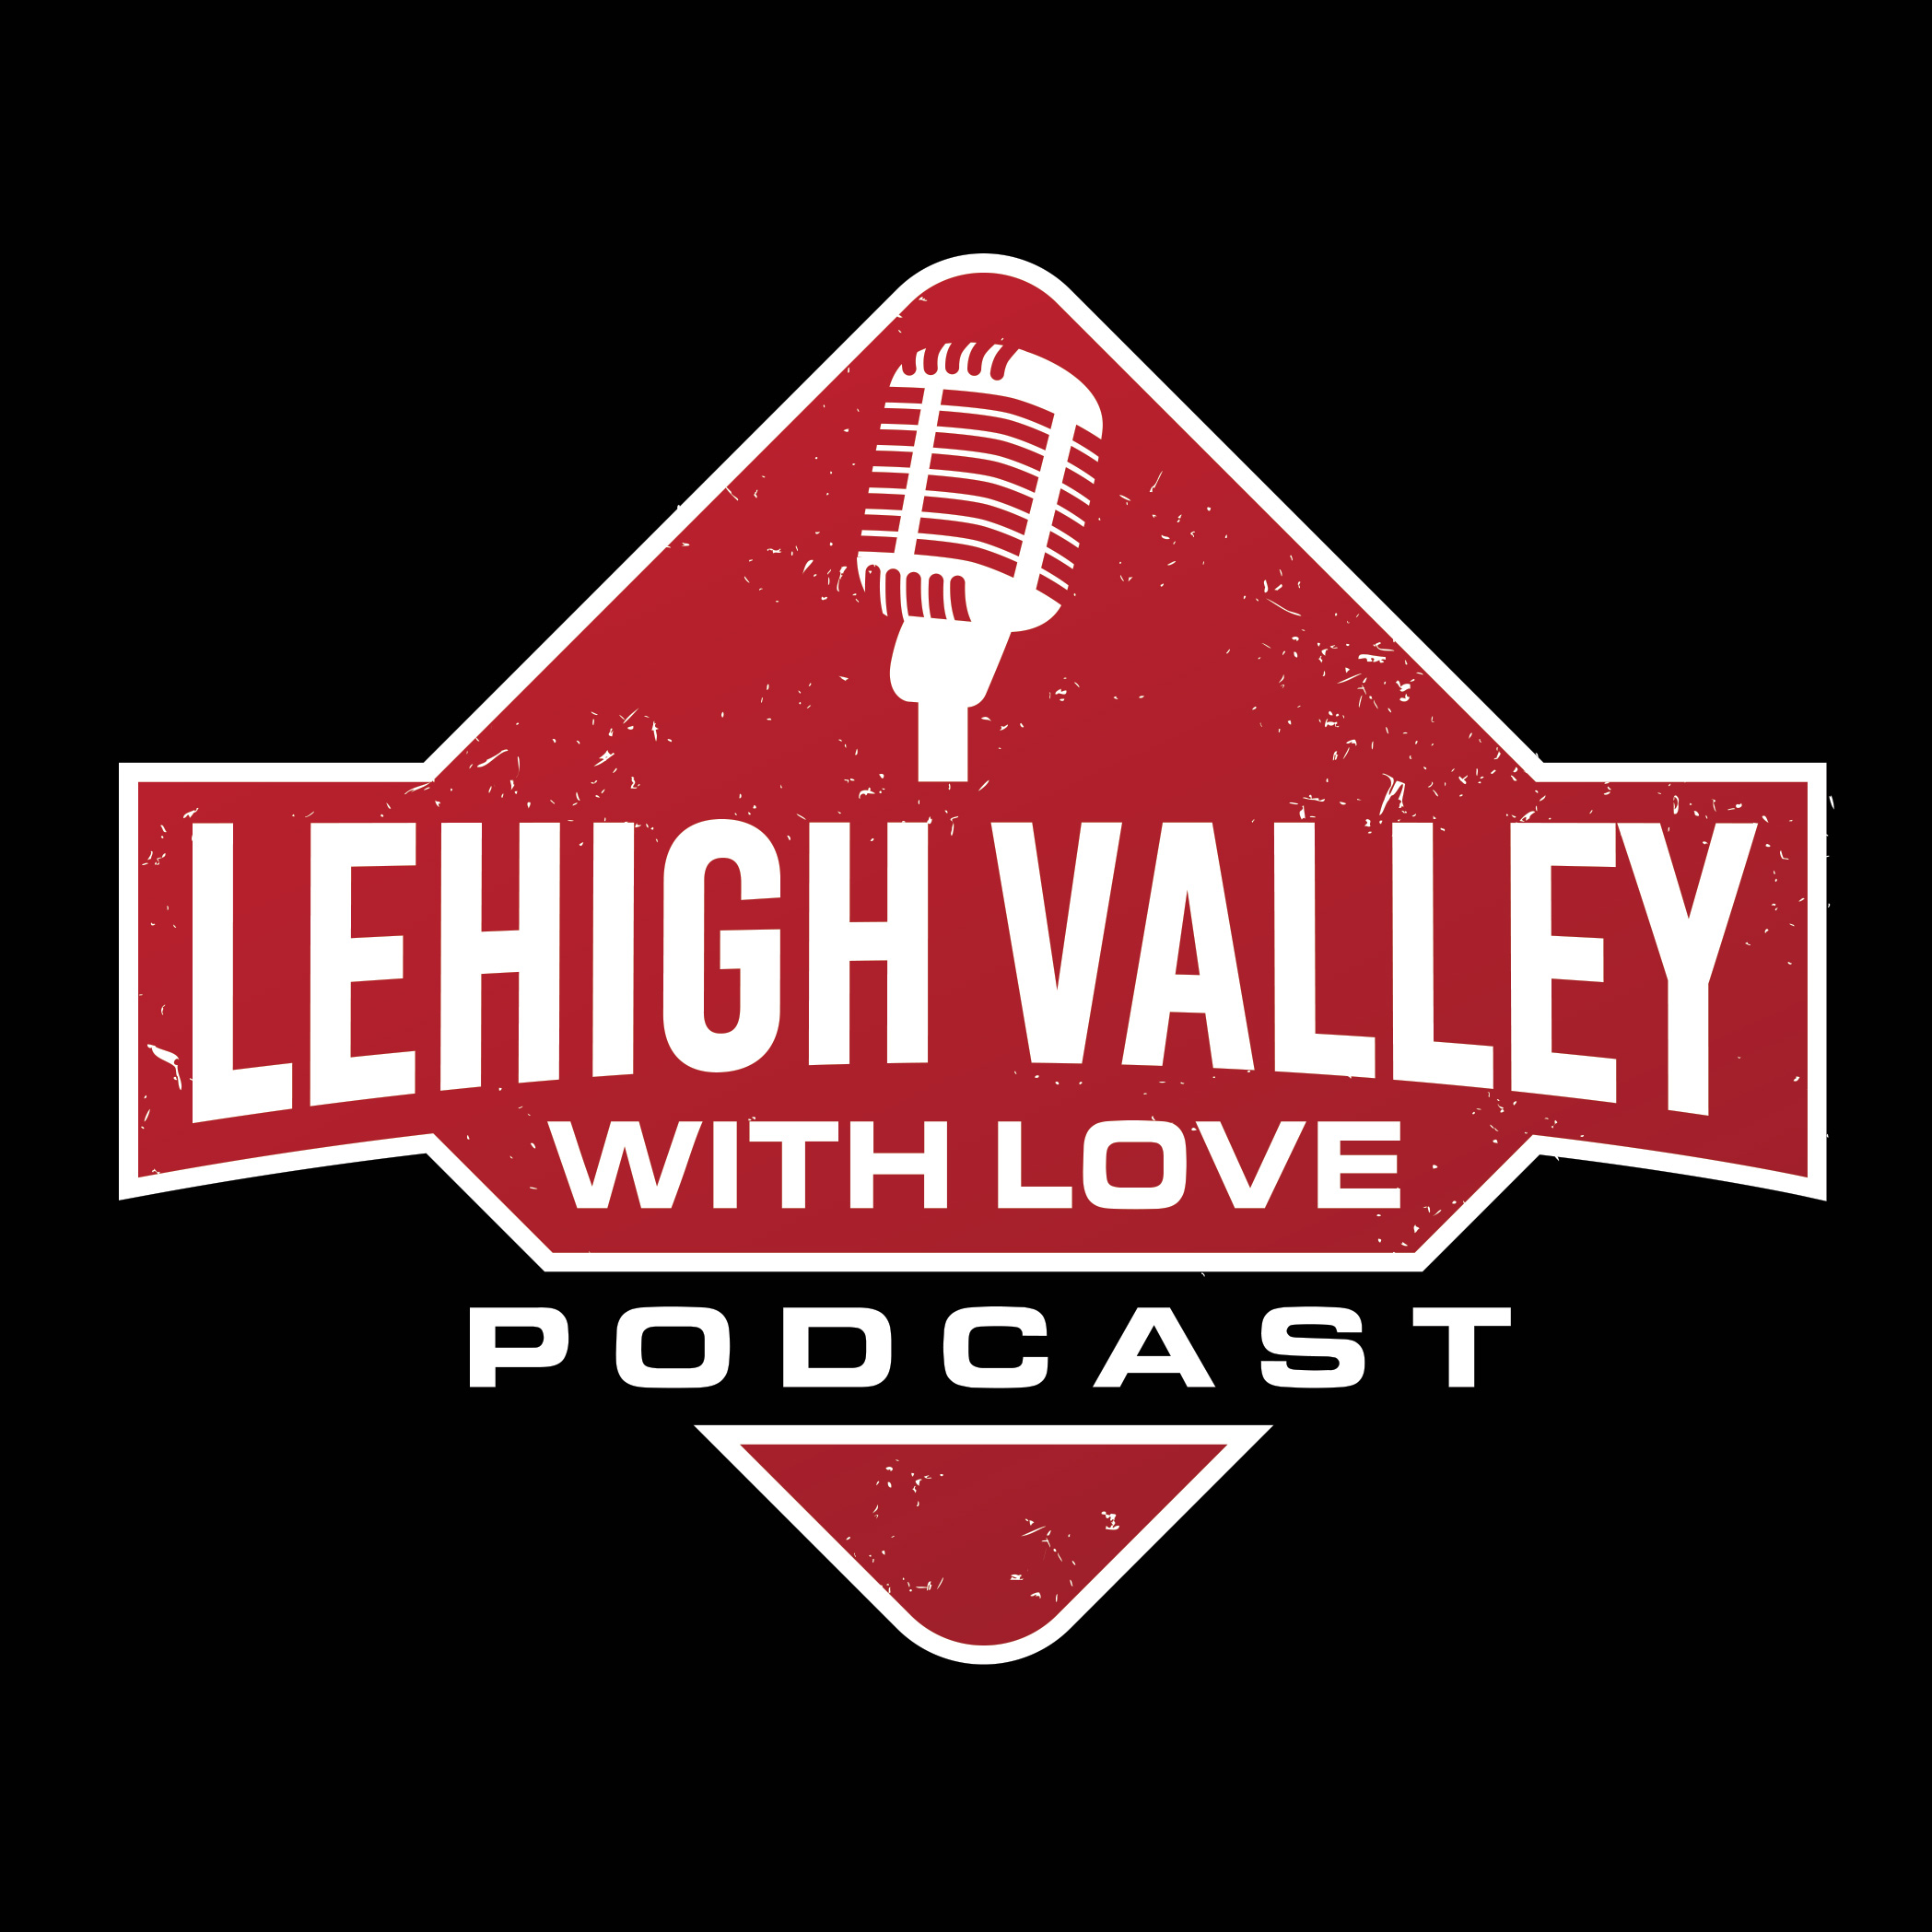 Lehigh Valley With Love podcast logo